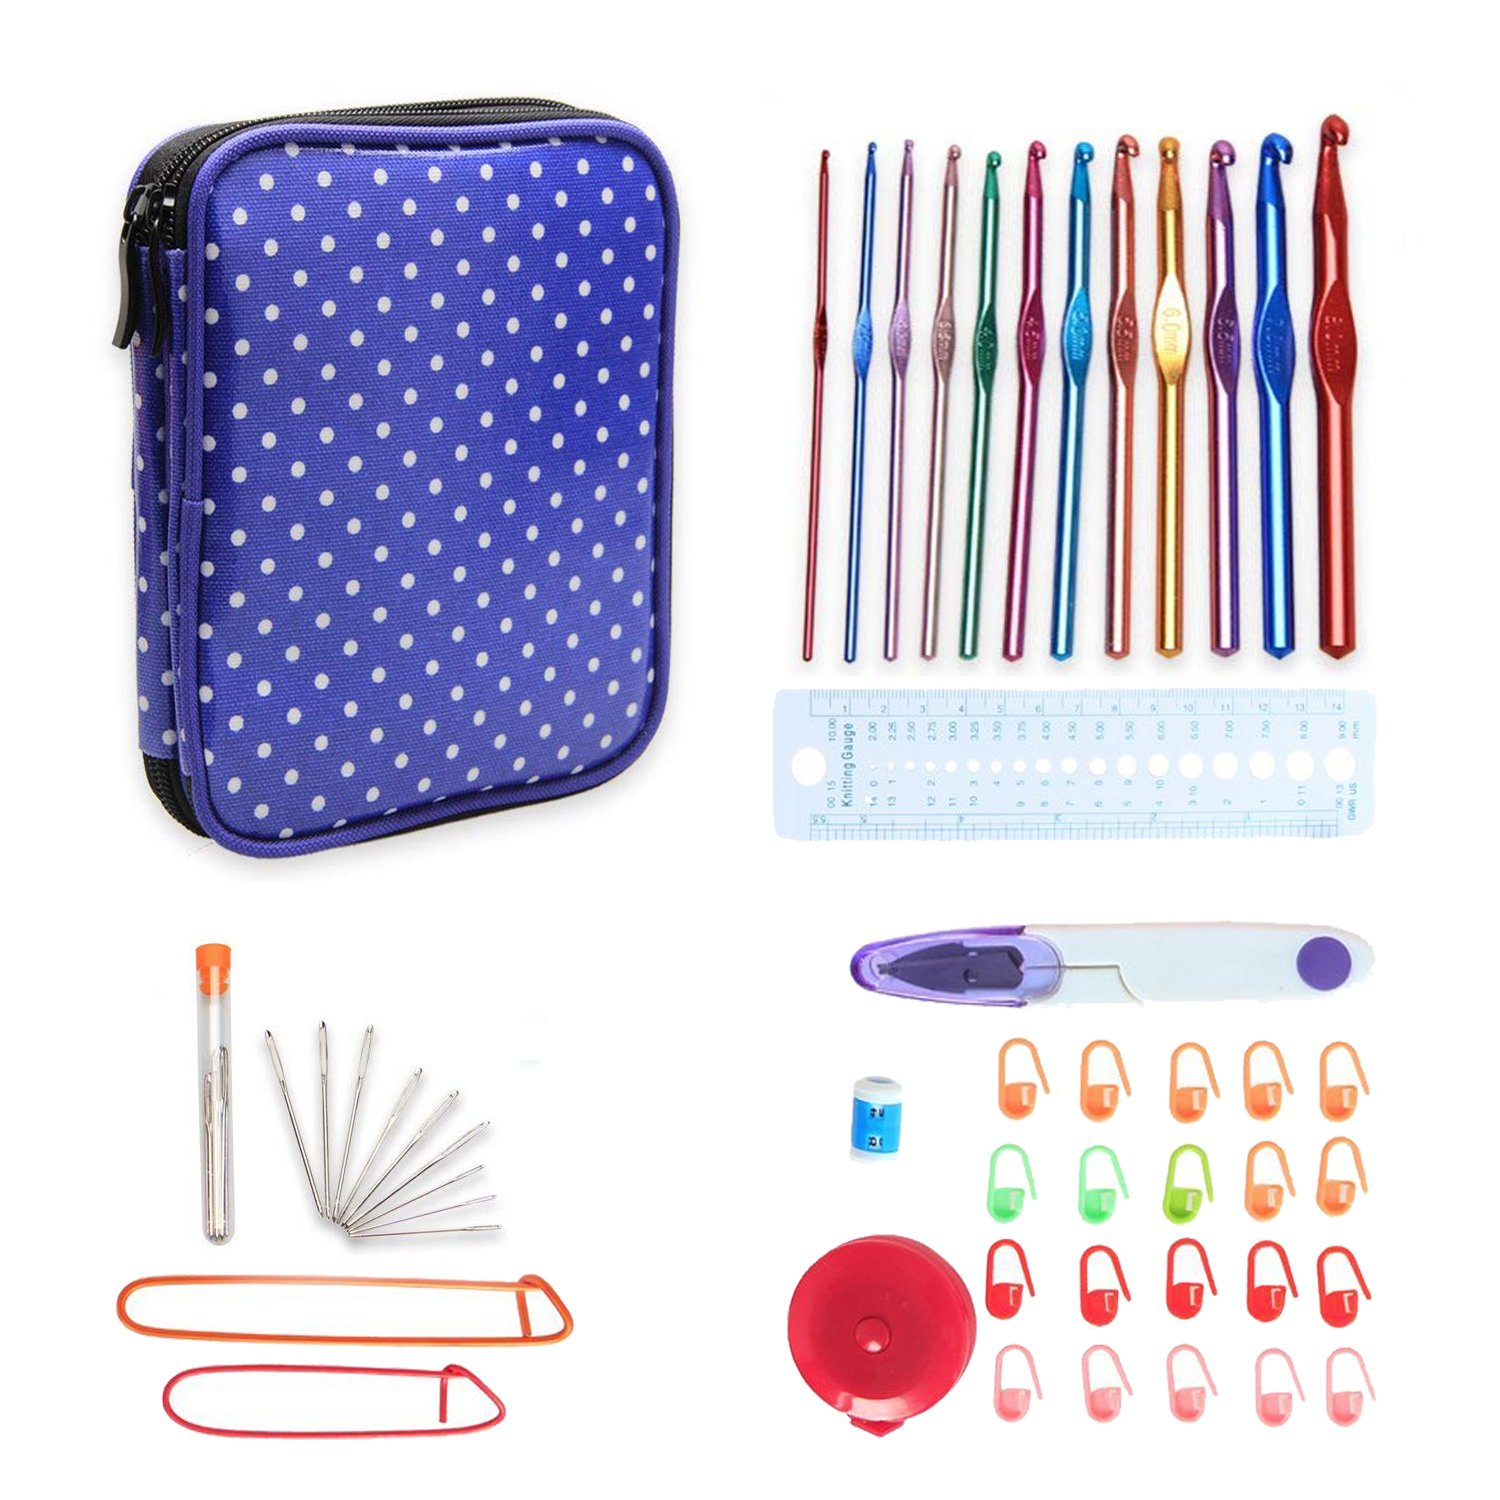 Teamoy Aluminum Crochet Hooks Set, Crochet Hook Organizer Case with 12pcs 2mm to 8mm Aluminum Hooks and Complete Accessories, All in One Place and Easy to Carry, Purple Dots